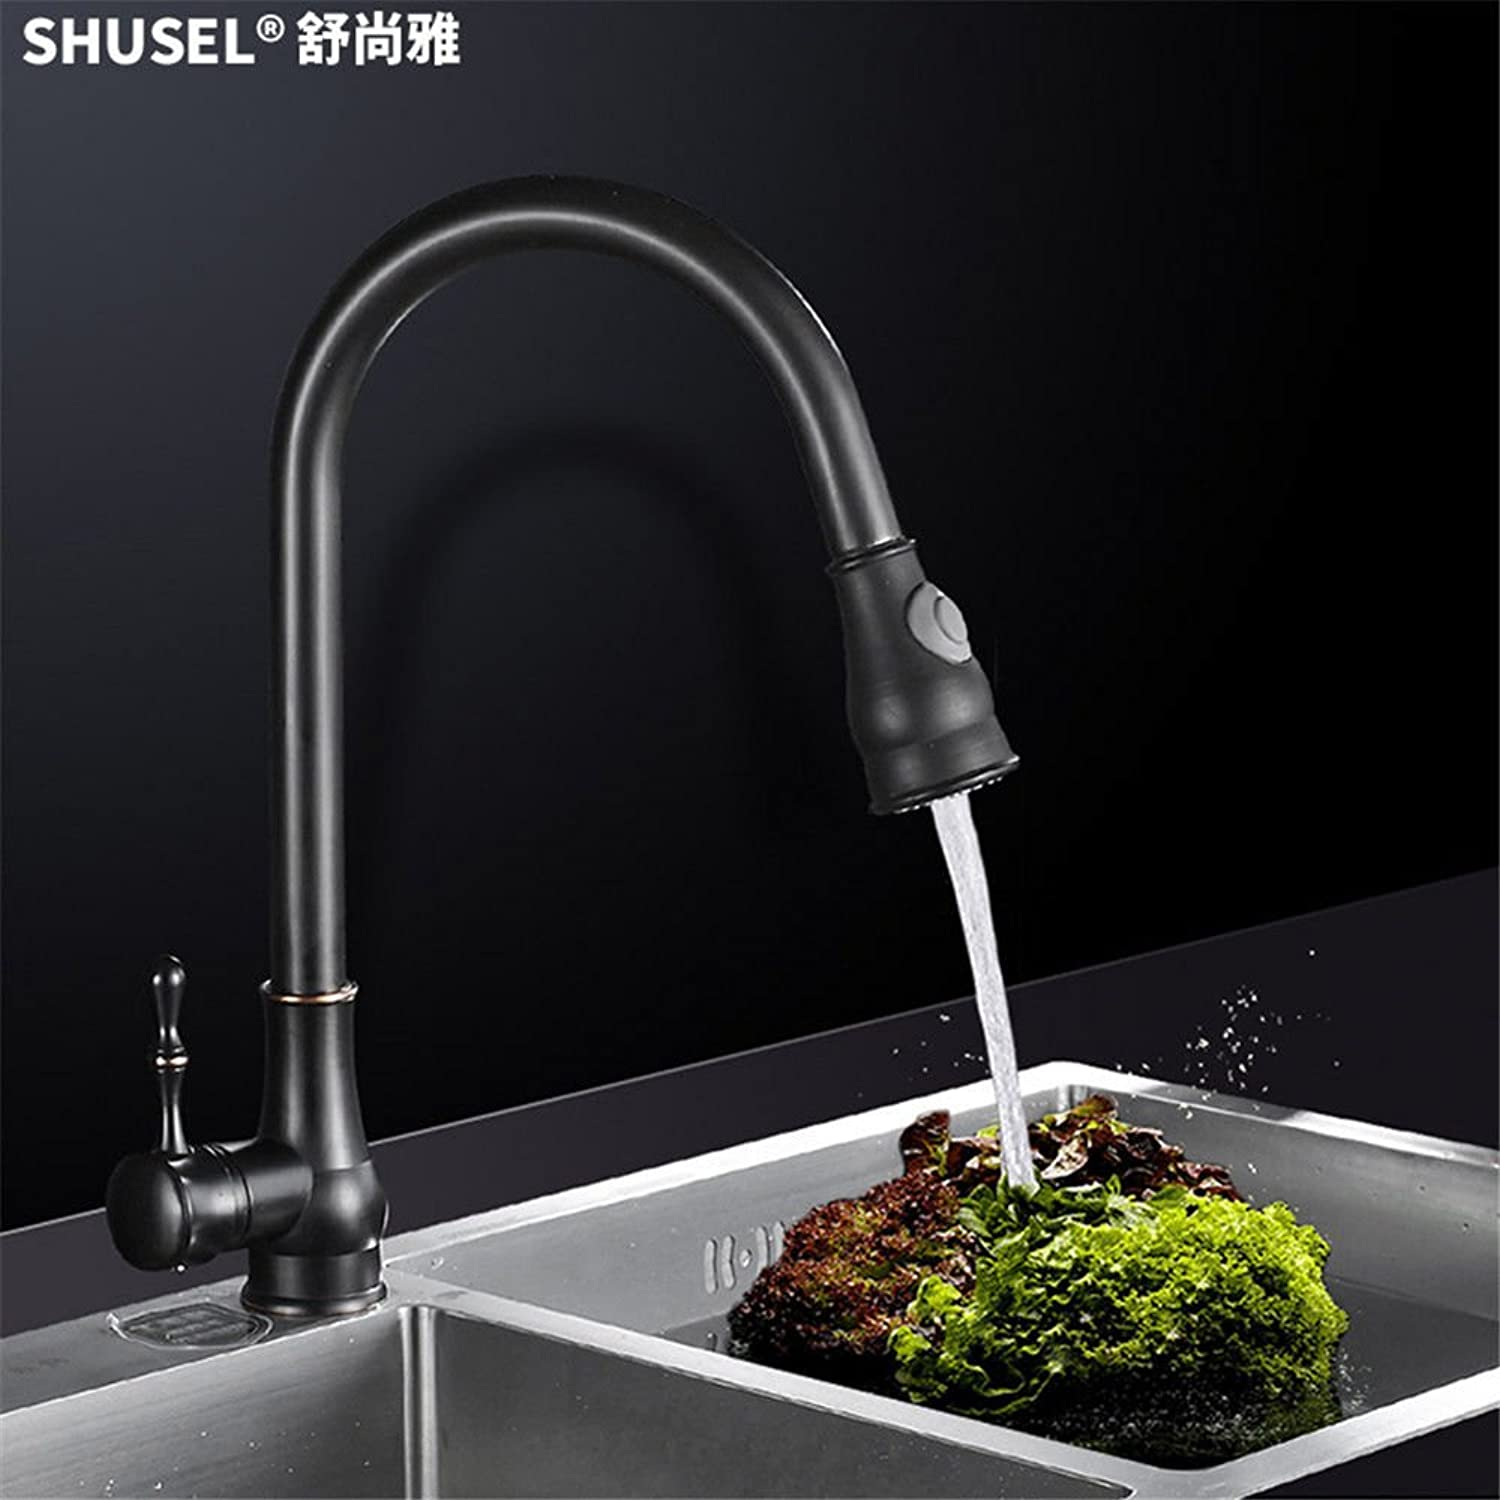 Commercial Single Lever Pull Down Kitchen Sink Faucet Brass Constructed Polished Black Antique Kitchen Pull-Out Copper Main Body Faucet Hot and Cold Sink Telescopic redatable Sink Faucet